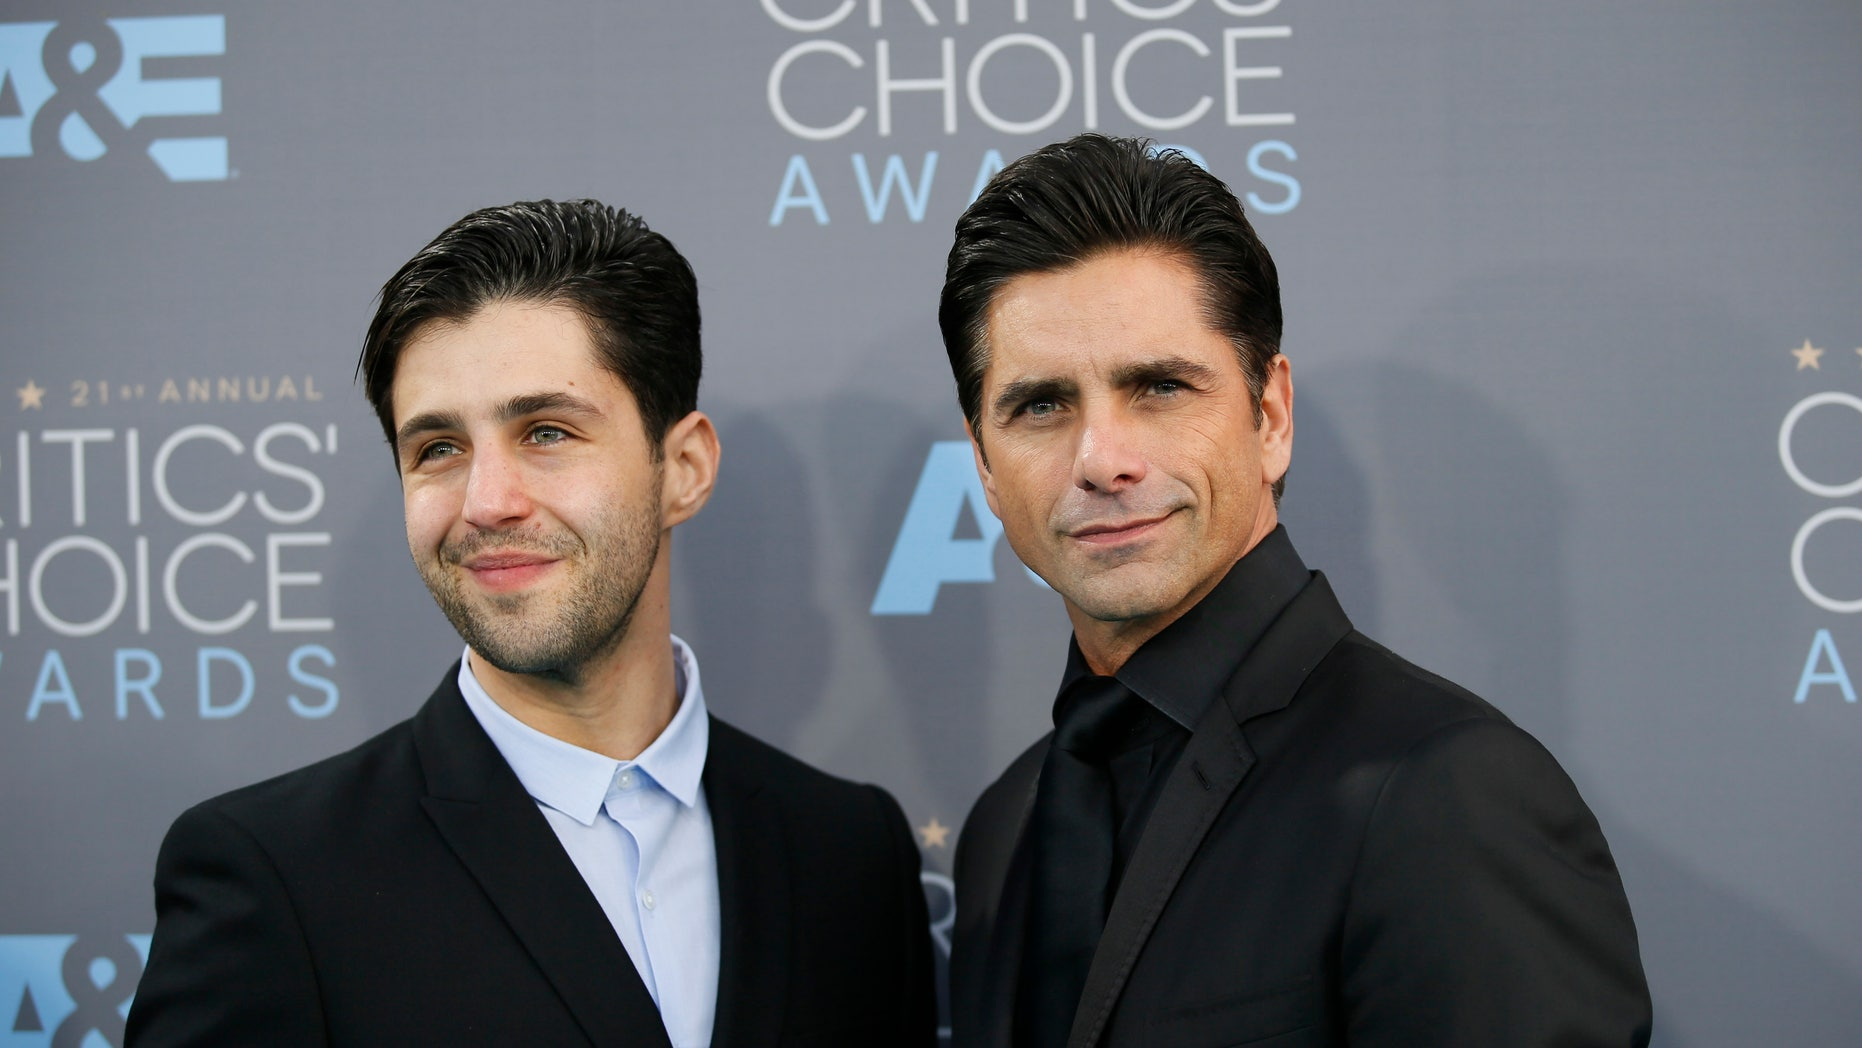 Actors Josh Peck, left, and John Stamos arrive at the 21st Annual Critics Choice Awards in Santa Monica, California January 17, 2016.  REUTERS/Danny Moloshok -